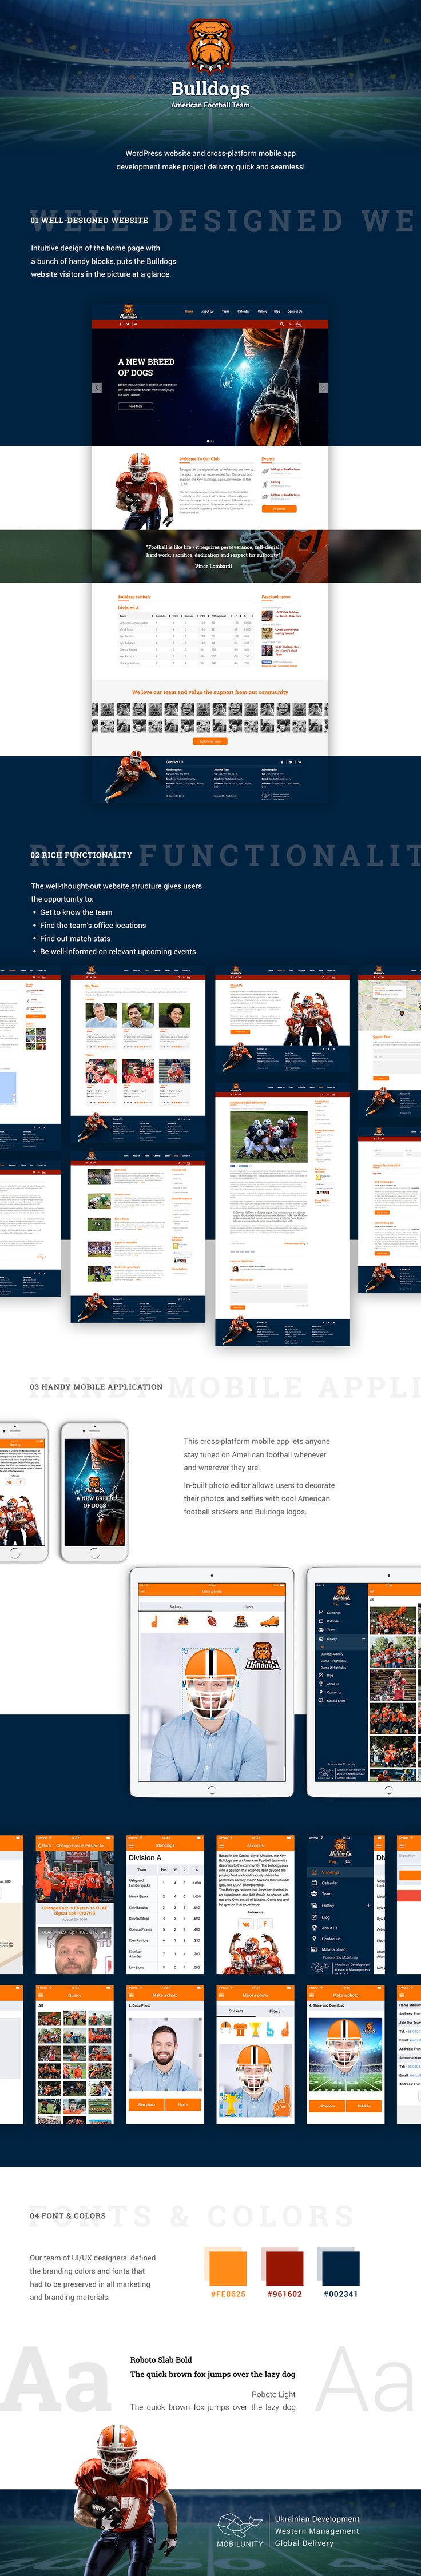 What means do you use to bring your enterprise to local and global awareness? American Football Team uses both web and mobile development, which will bring to success!